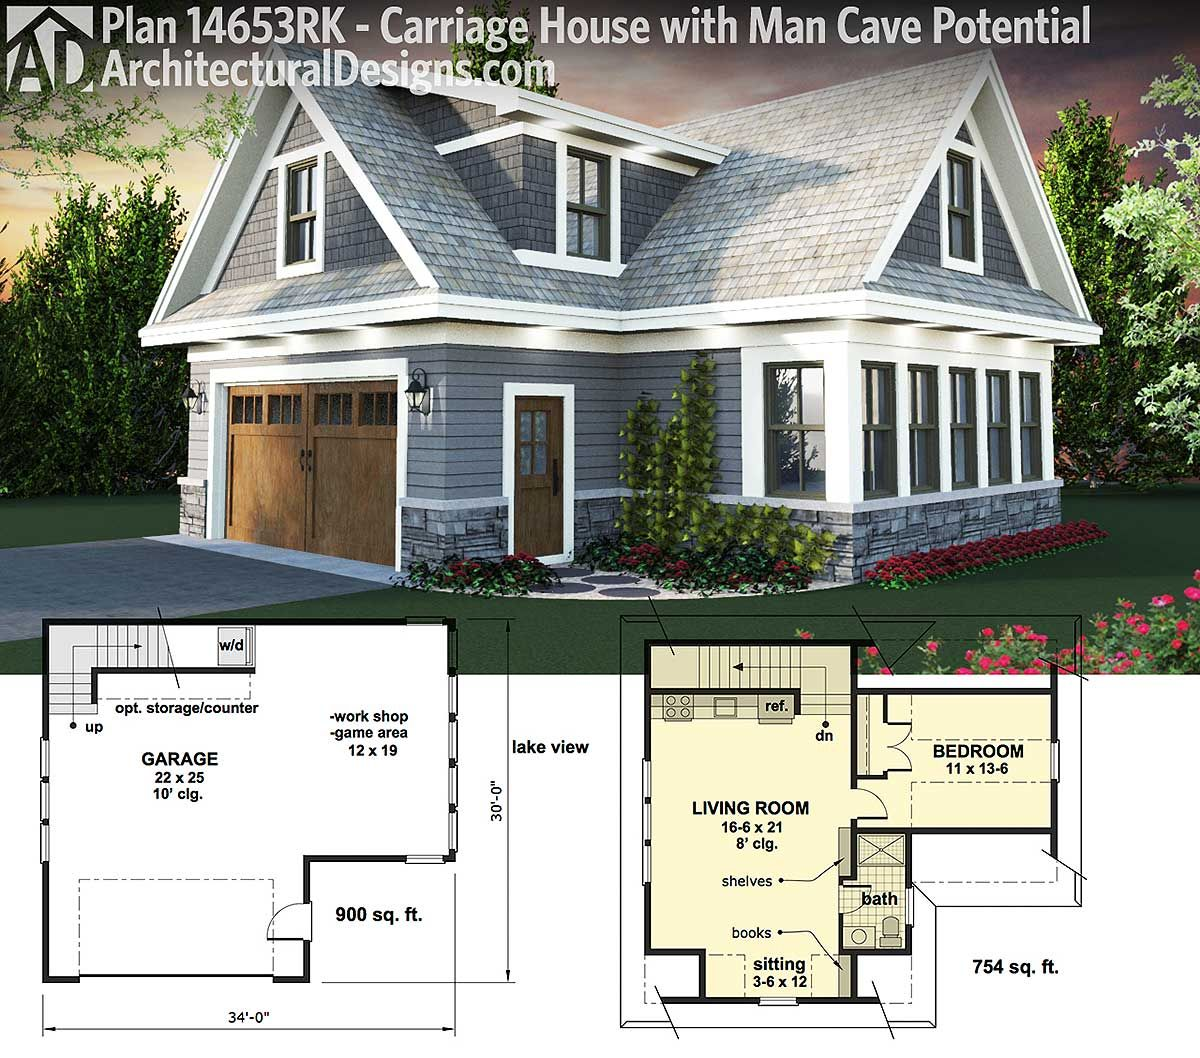 Plan 14653rk carriage house plan with man cave potential for Small cottage plans with garage